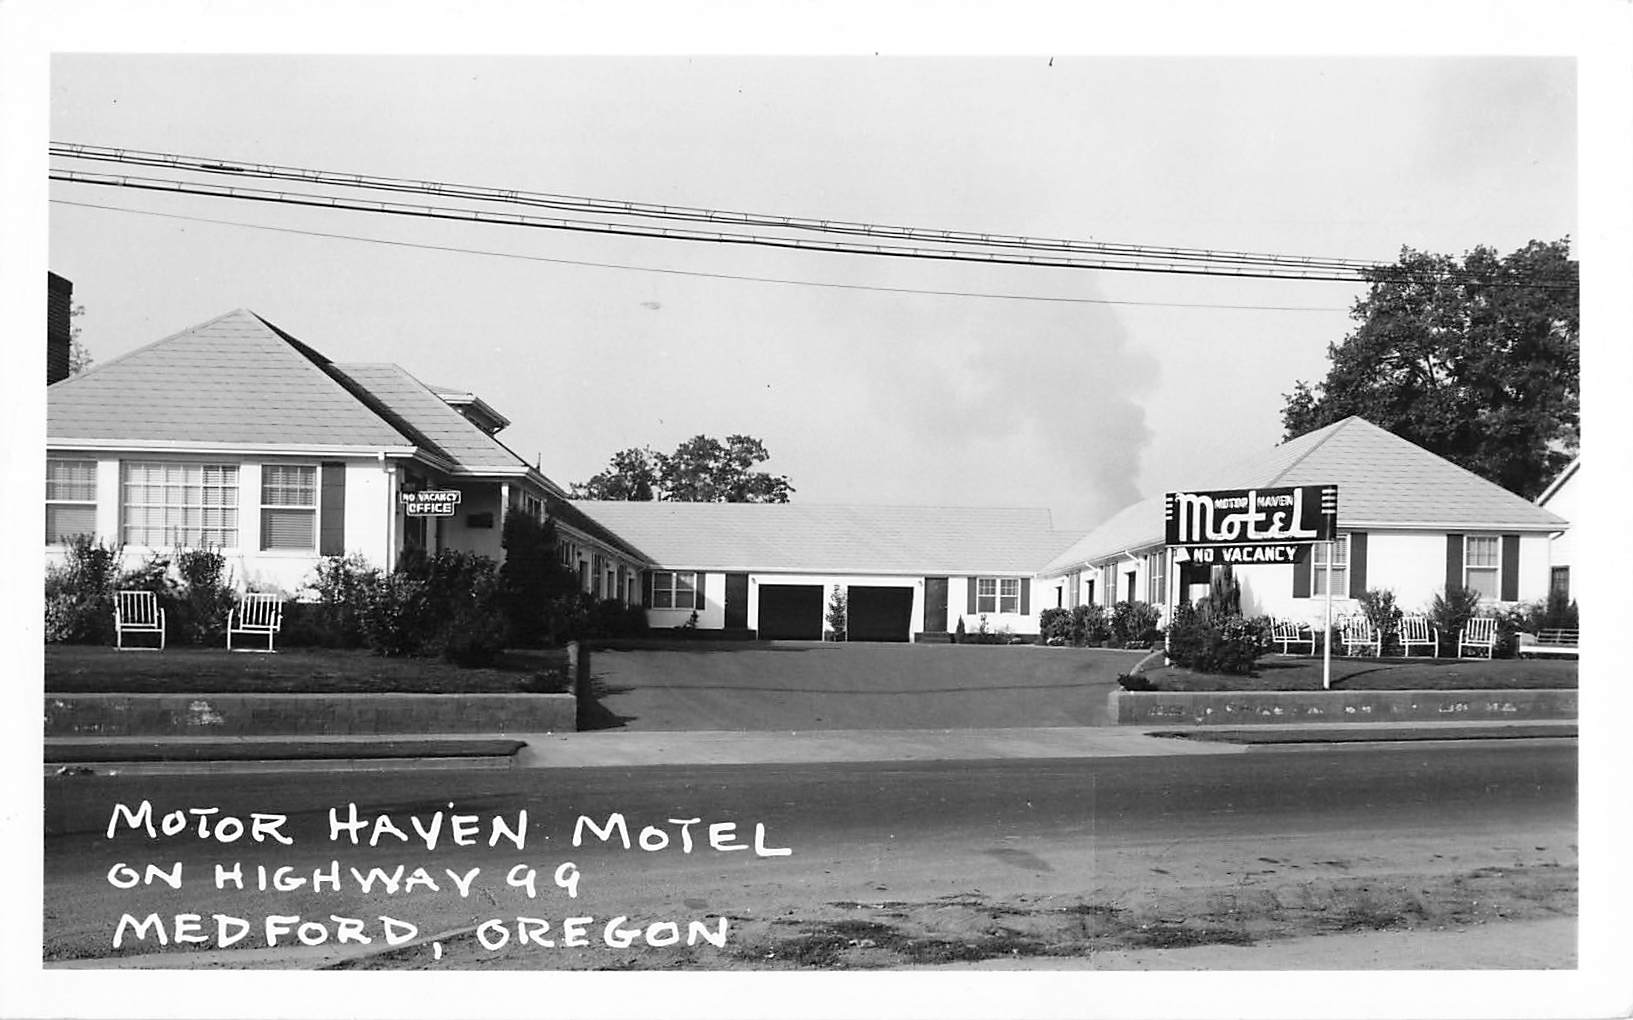 Medford, OR. 1950's. Motor Haven Motel On Highway 99. RPPC Postcard. Canada